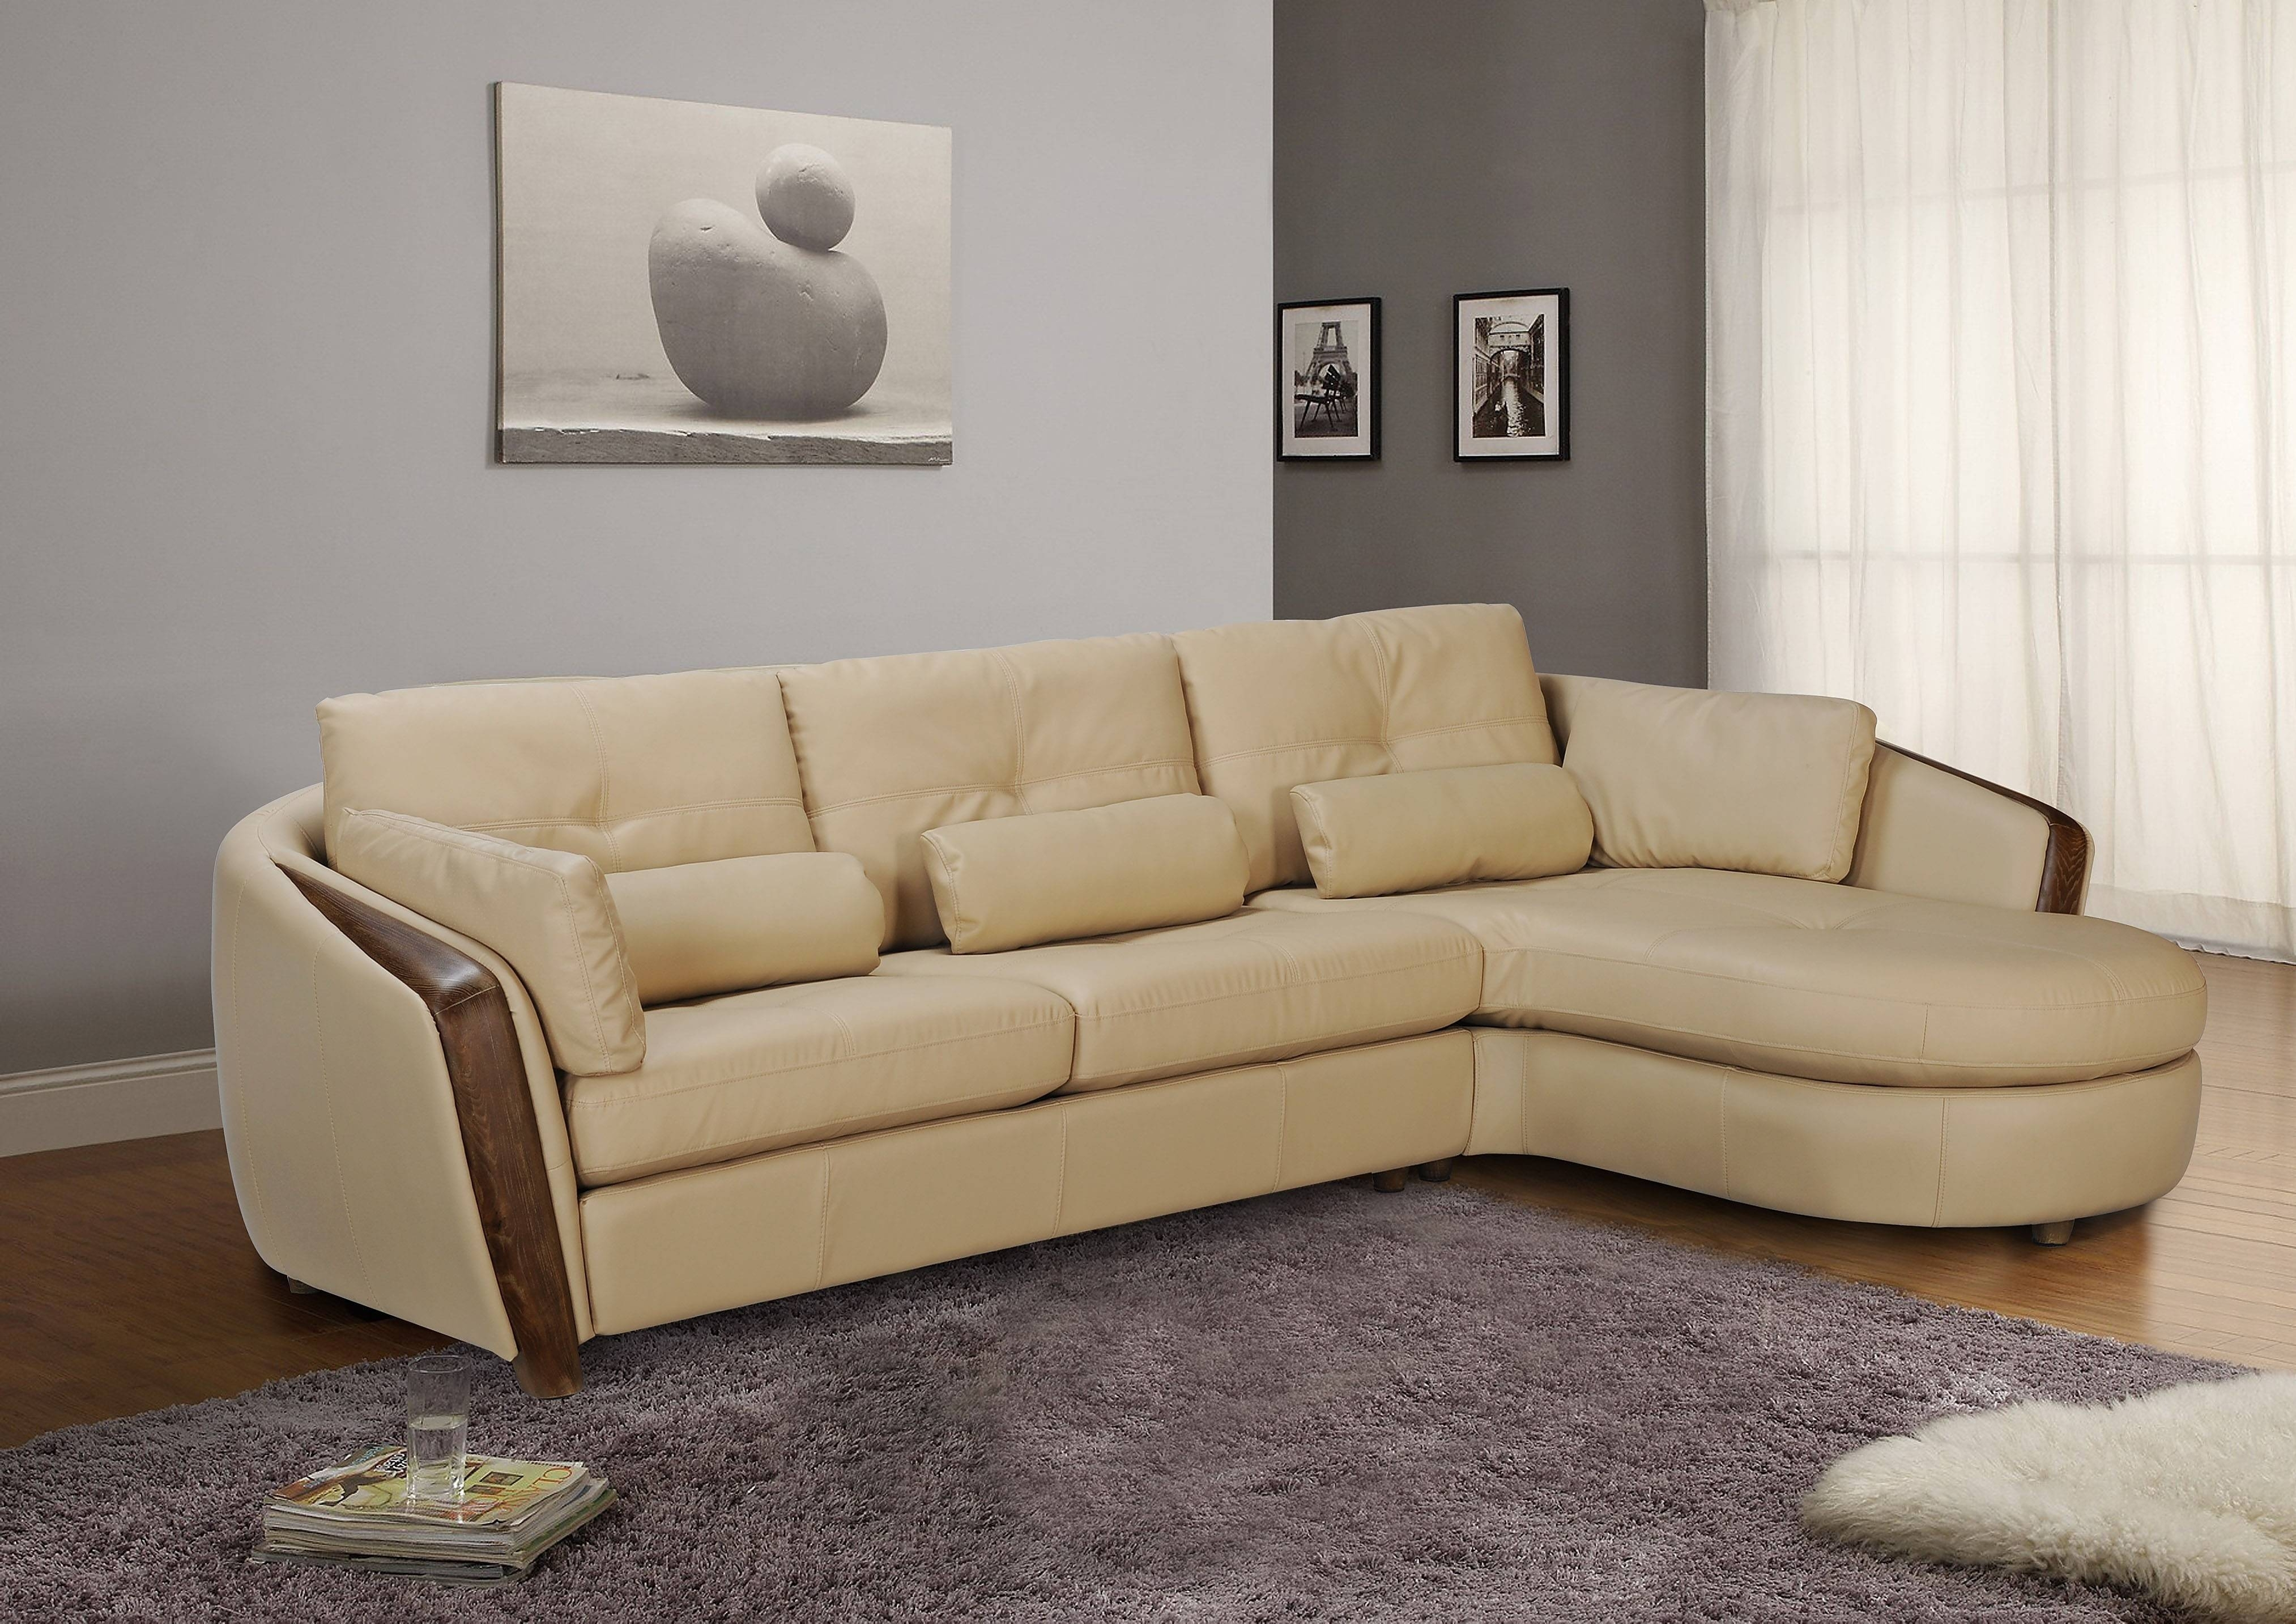 Taupe Bonded Leather Sectional Sofa With Ash Wood Accent Baltimore Intended For Ontario Sectional Sofas (View 4 of 10)